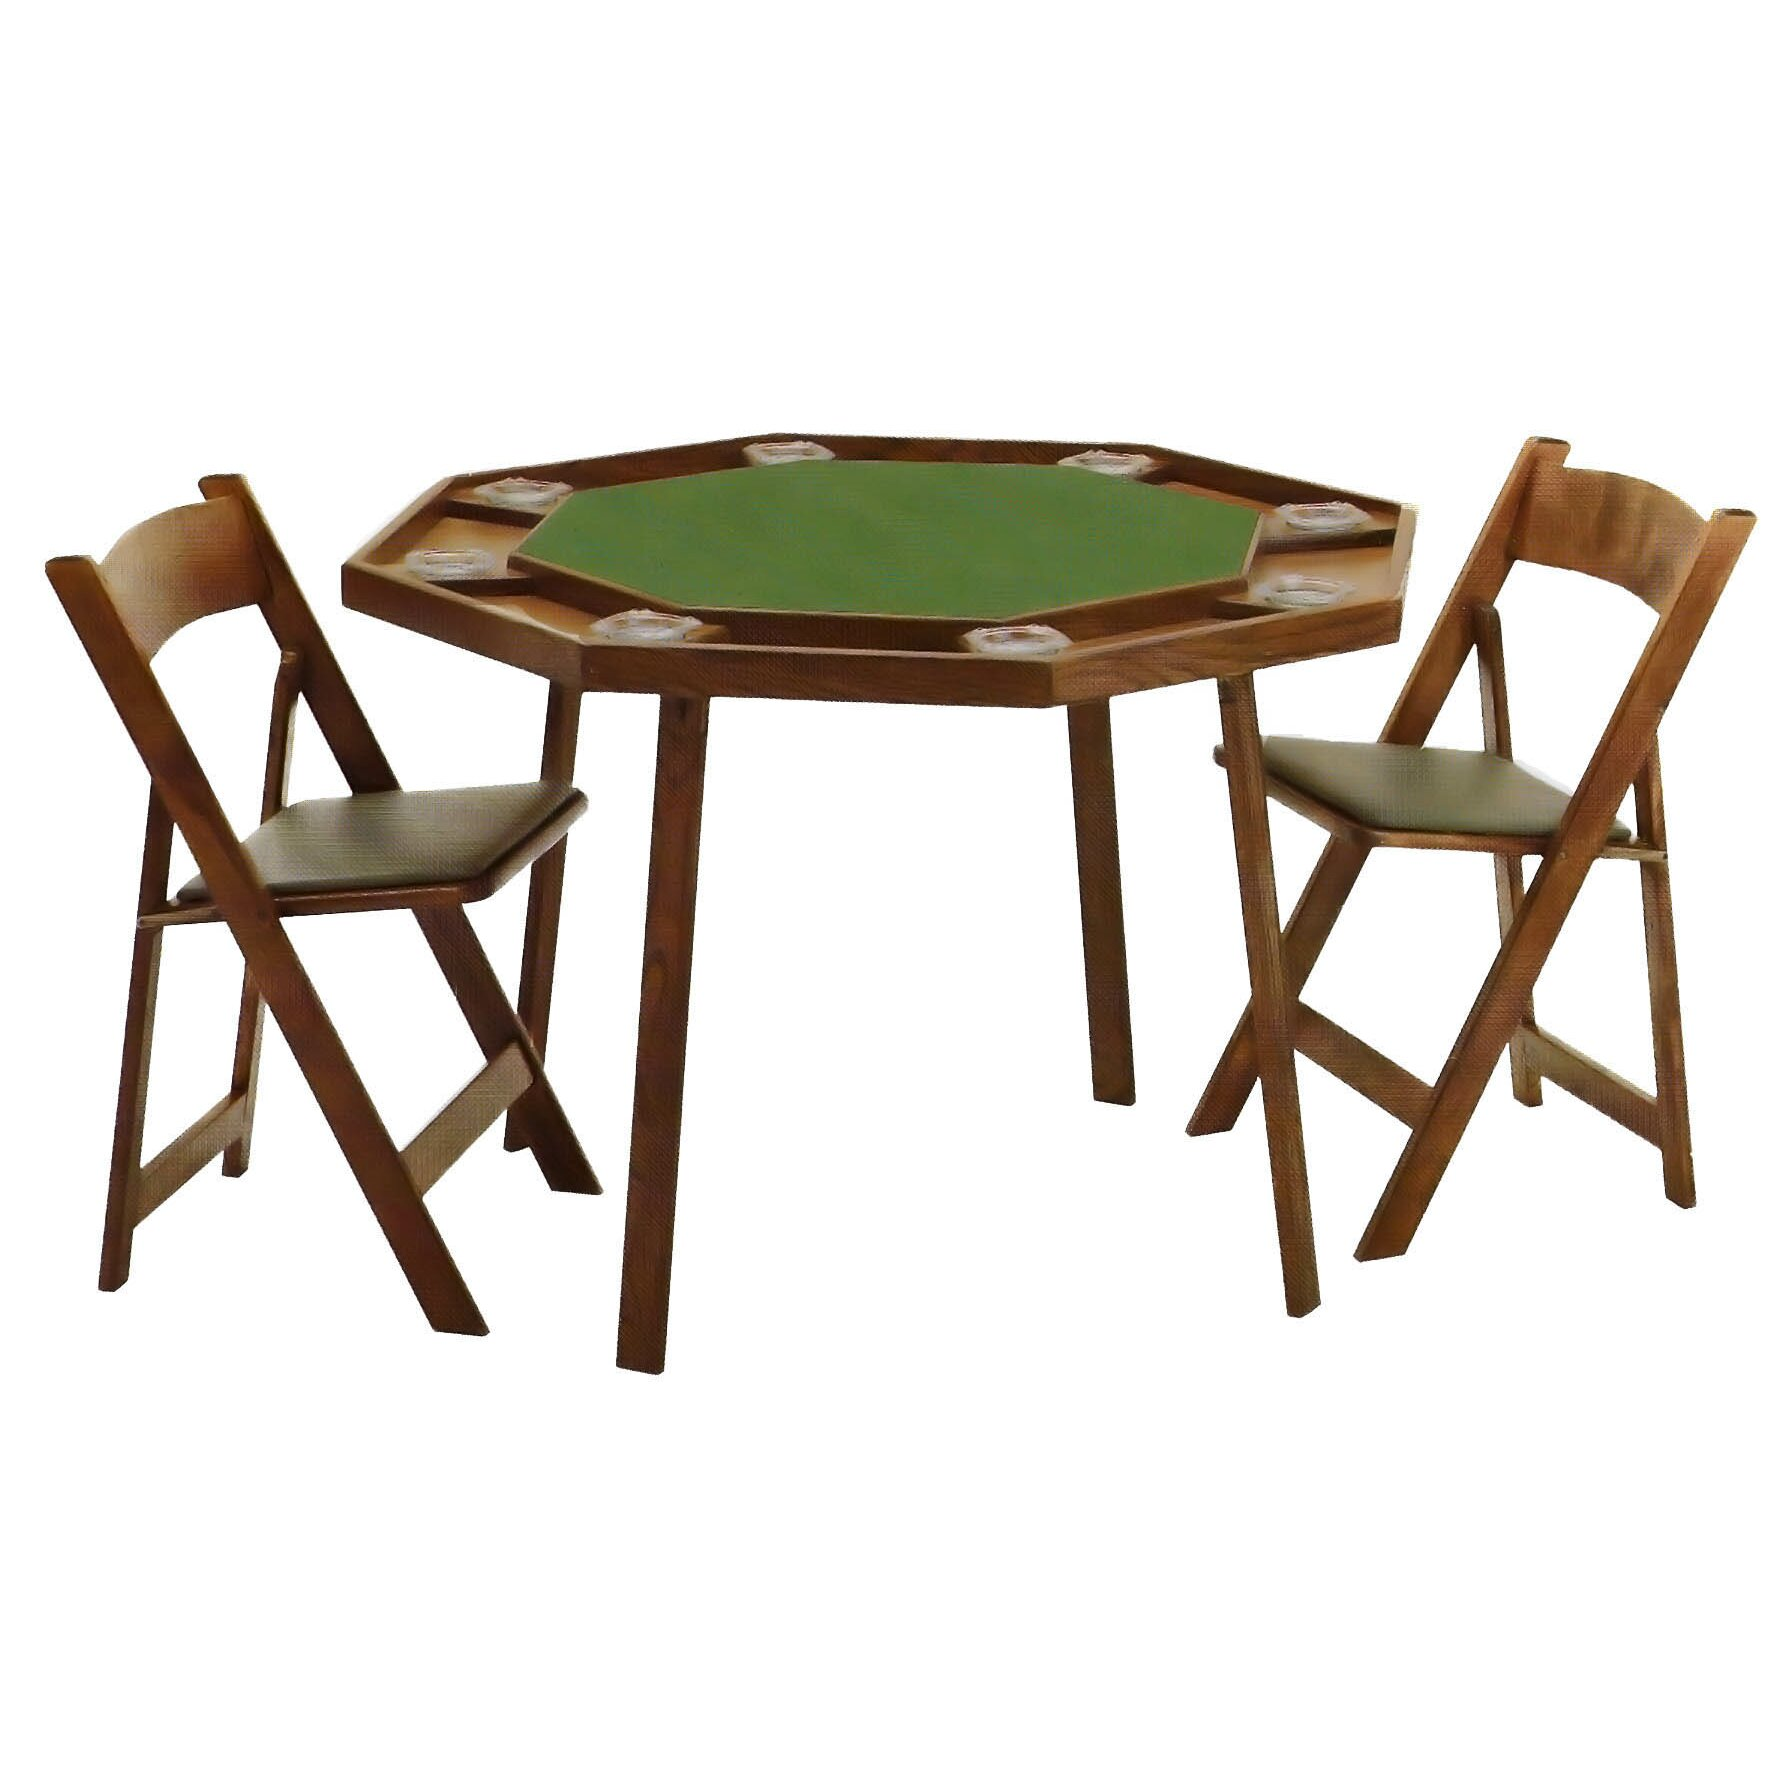 Kestell Furniture 46quot Oak Compact Folding Poker Table Set  sc 1 st  Castrophotos & Poker Set Table - Castrophotos